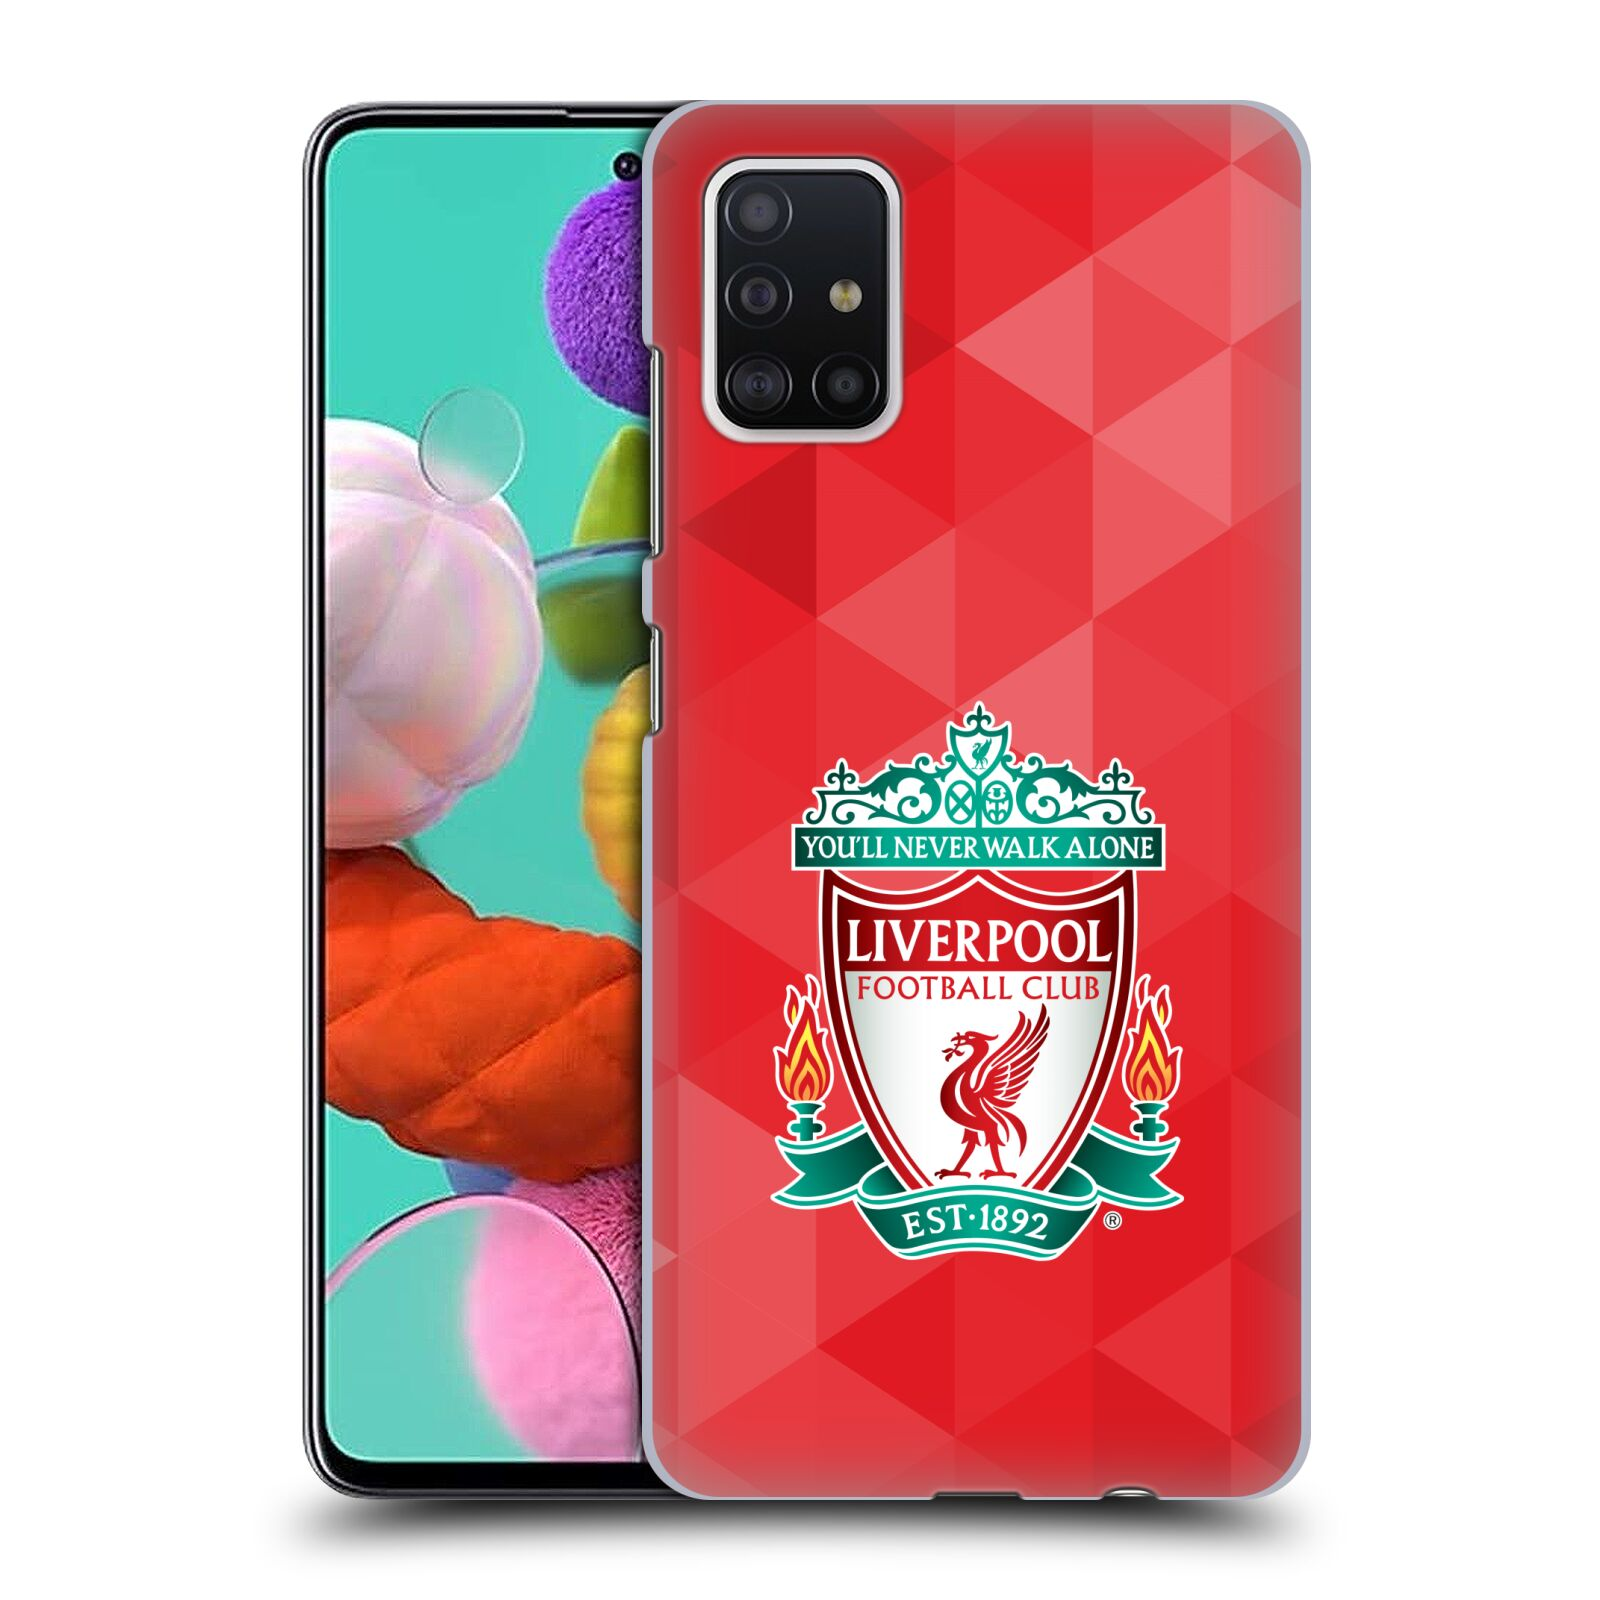 Plastové pouzdro na mobil Samsung Galaxy A51 - Head Case - ZNAK LIVERPOOL FC OFFICIAL GEOMETRIC RED